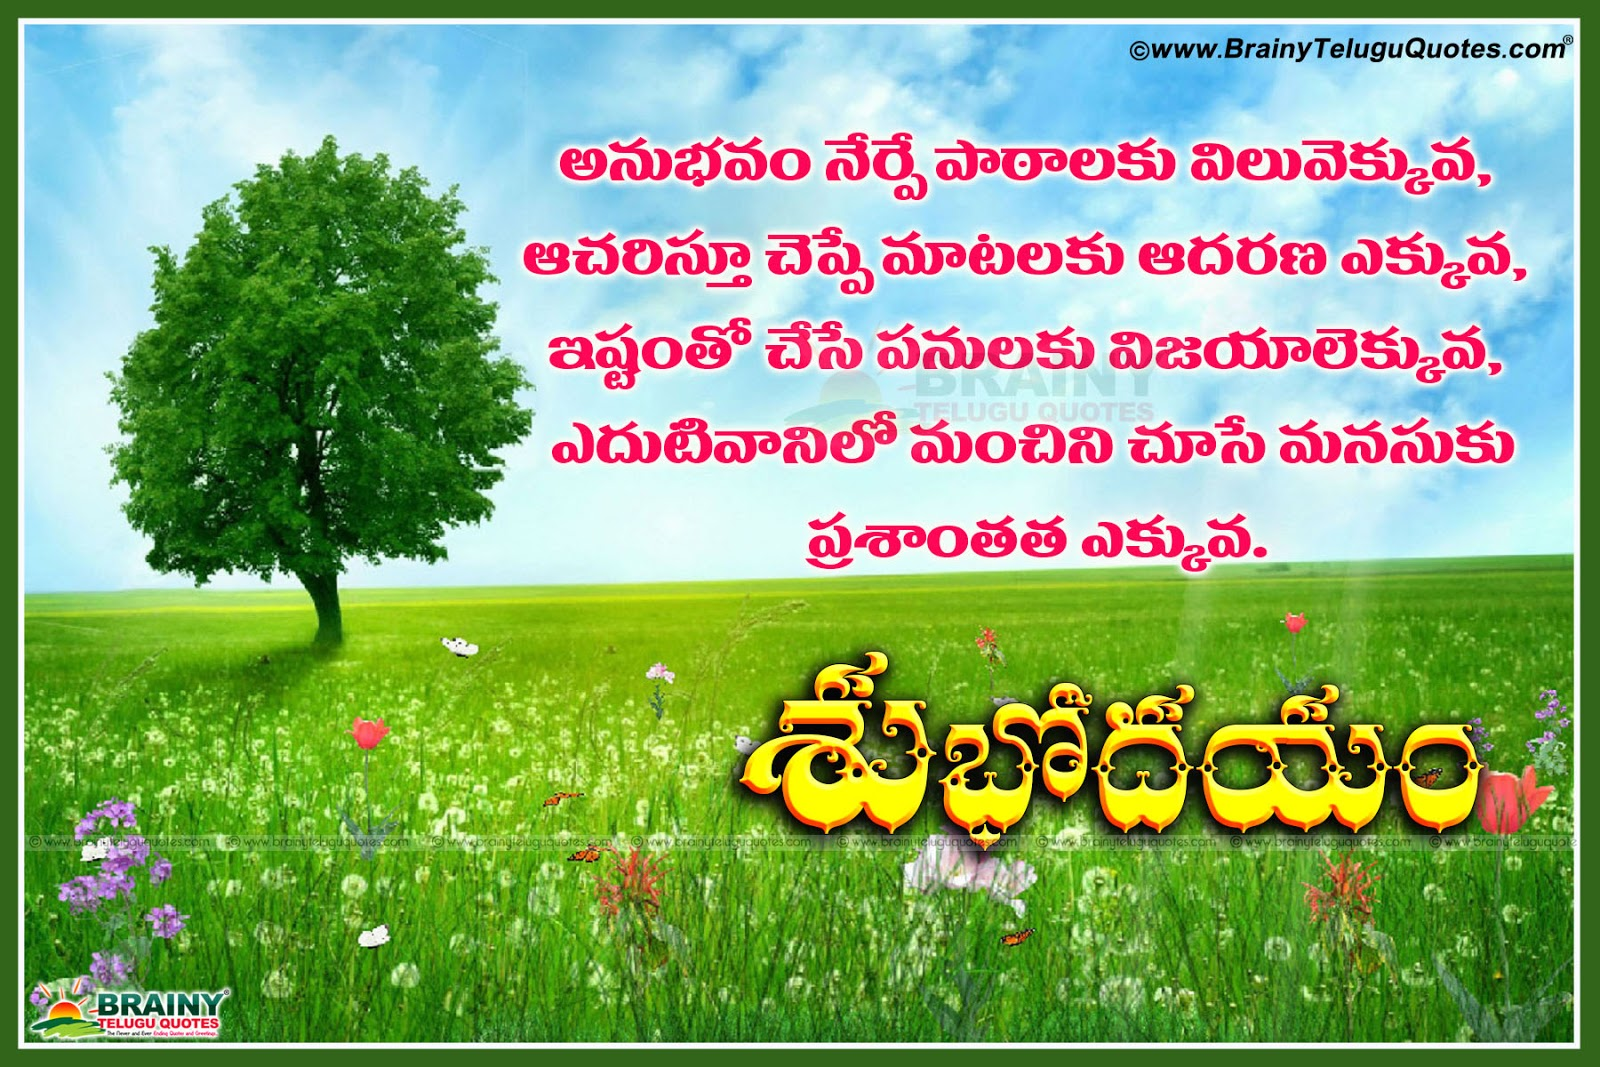 Here Is A Telugu Language Top Good Morning Message And Quotes For Friends,  Telugu Good Morning Wishes With Best Quotes, Telugu Top Good Morning  Wallpapers, ...